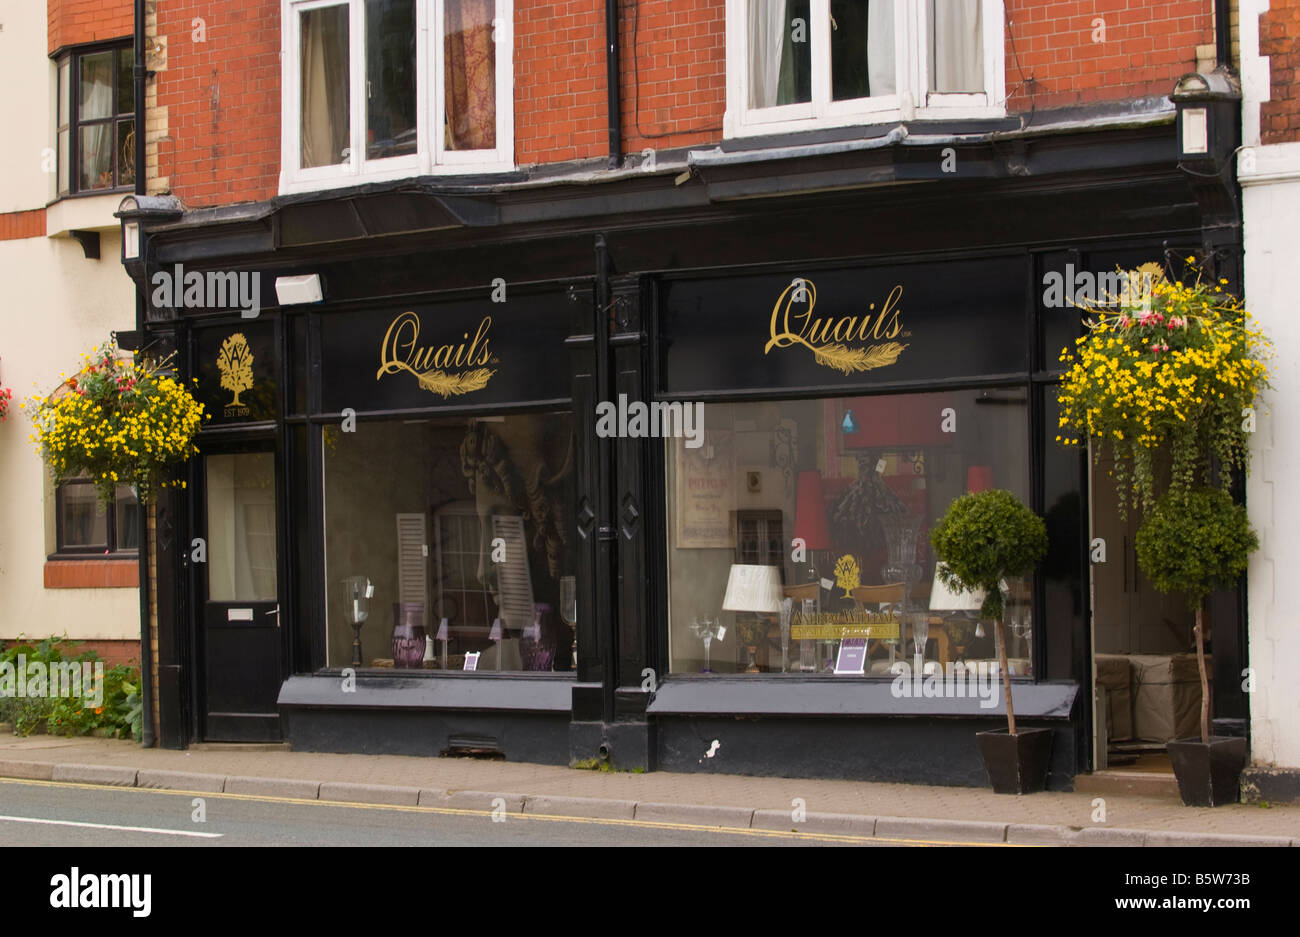 Quails interior design store in Usk Monmouthshire South Wales UK - Stock Image